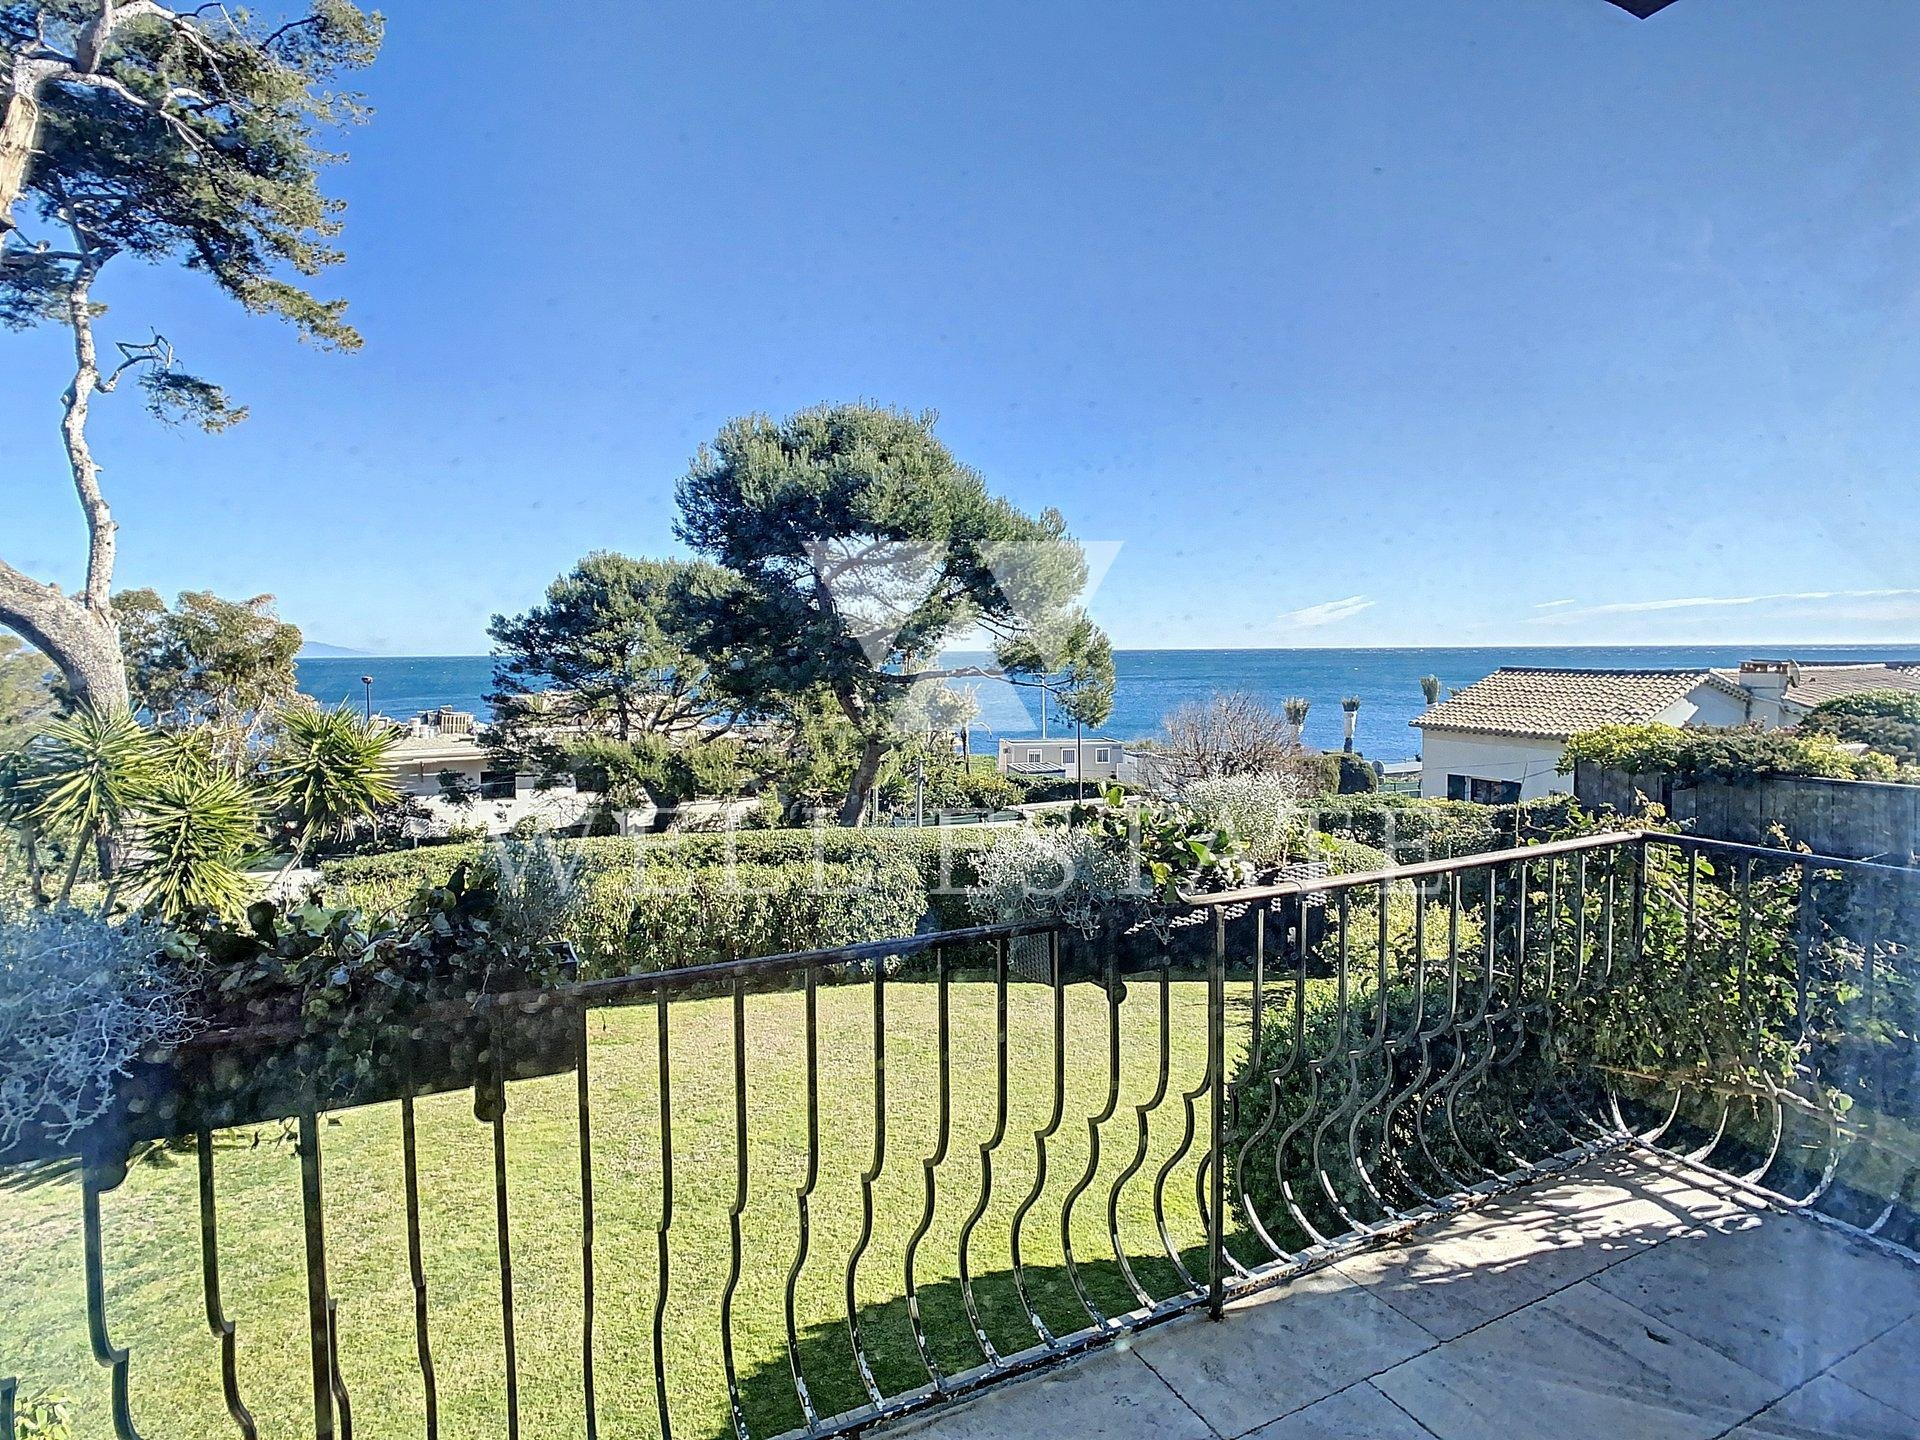 CAP D'ANTIBES VILLA 350m2 6 BEDROOMS SWIMMING POOL SEA VIEW